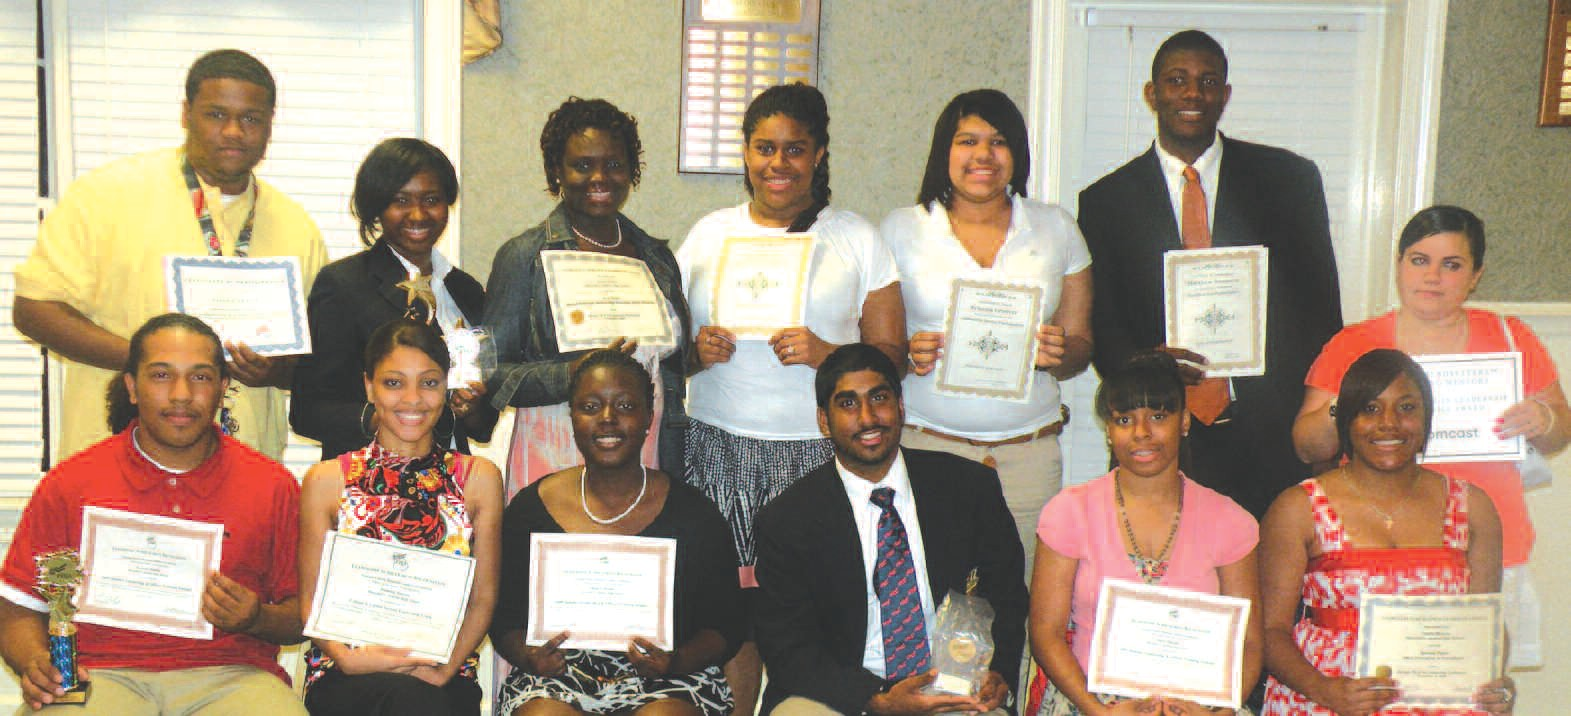 Students were honored during the Career and Technical Student Organizations Banquet